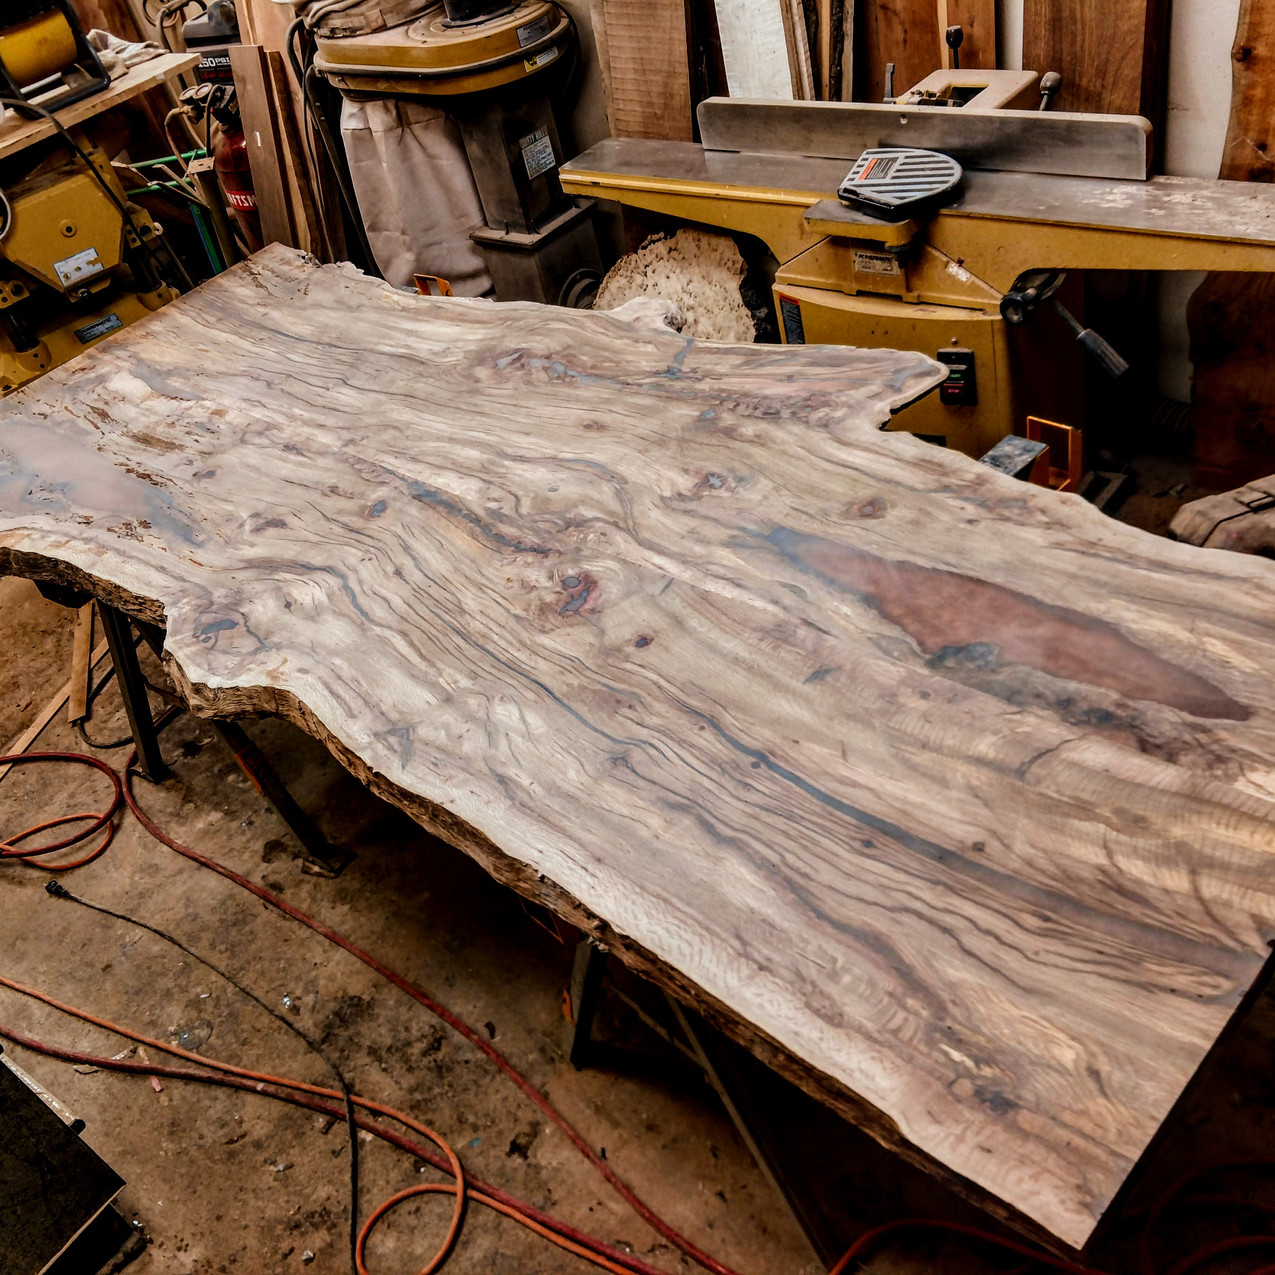 Arizona Black Cherry bookmatched slabs from Cottonwood